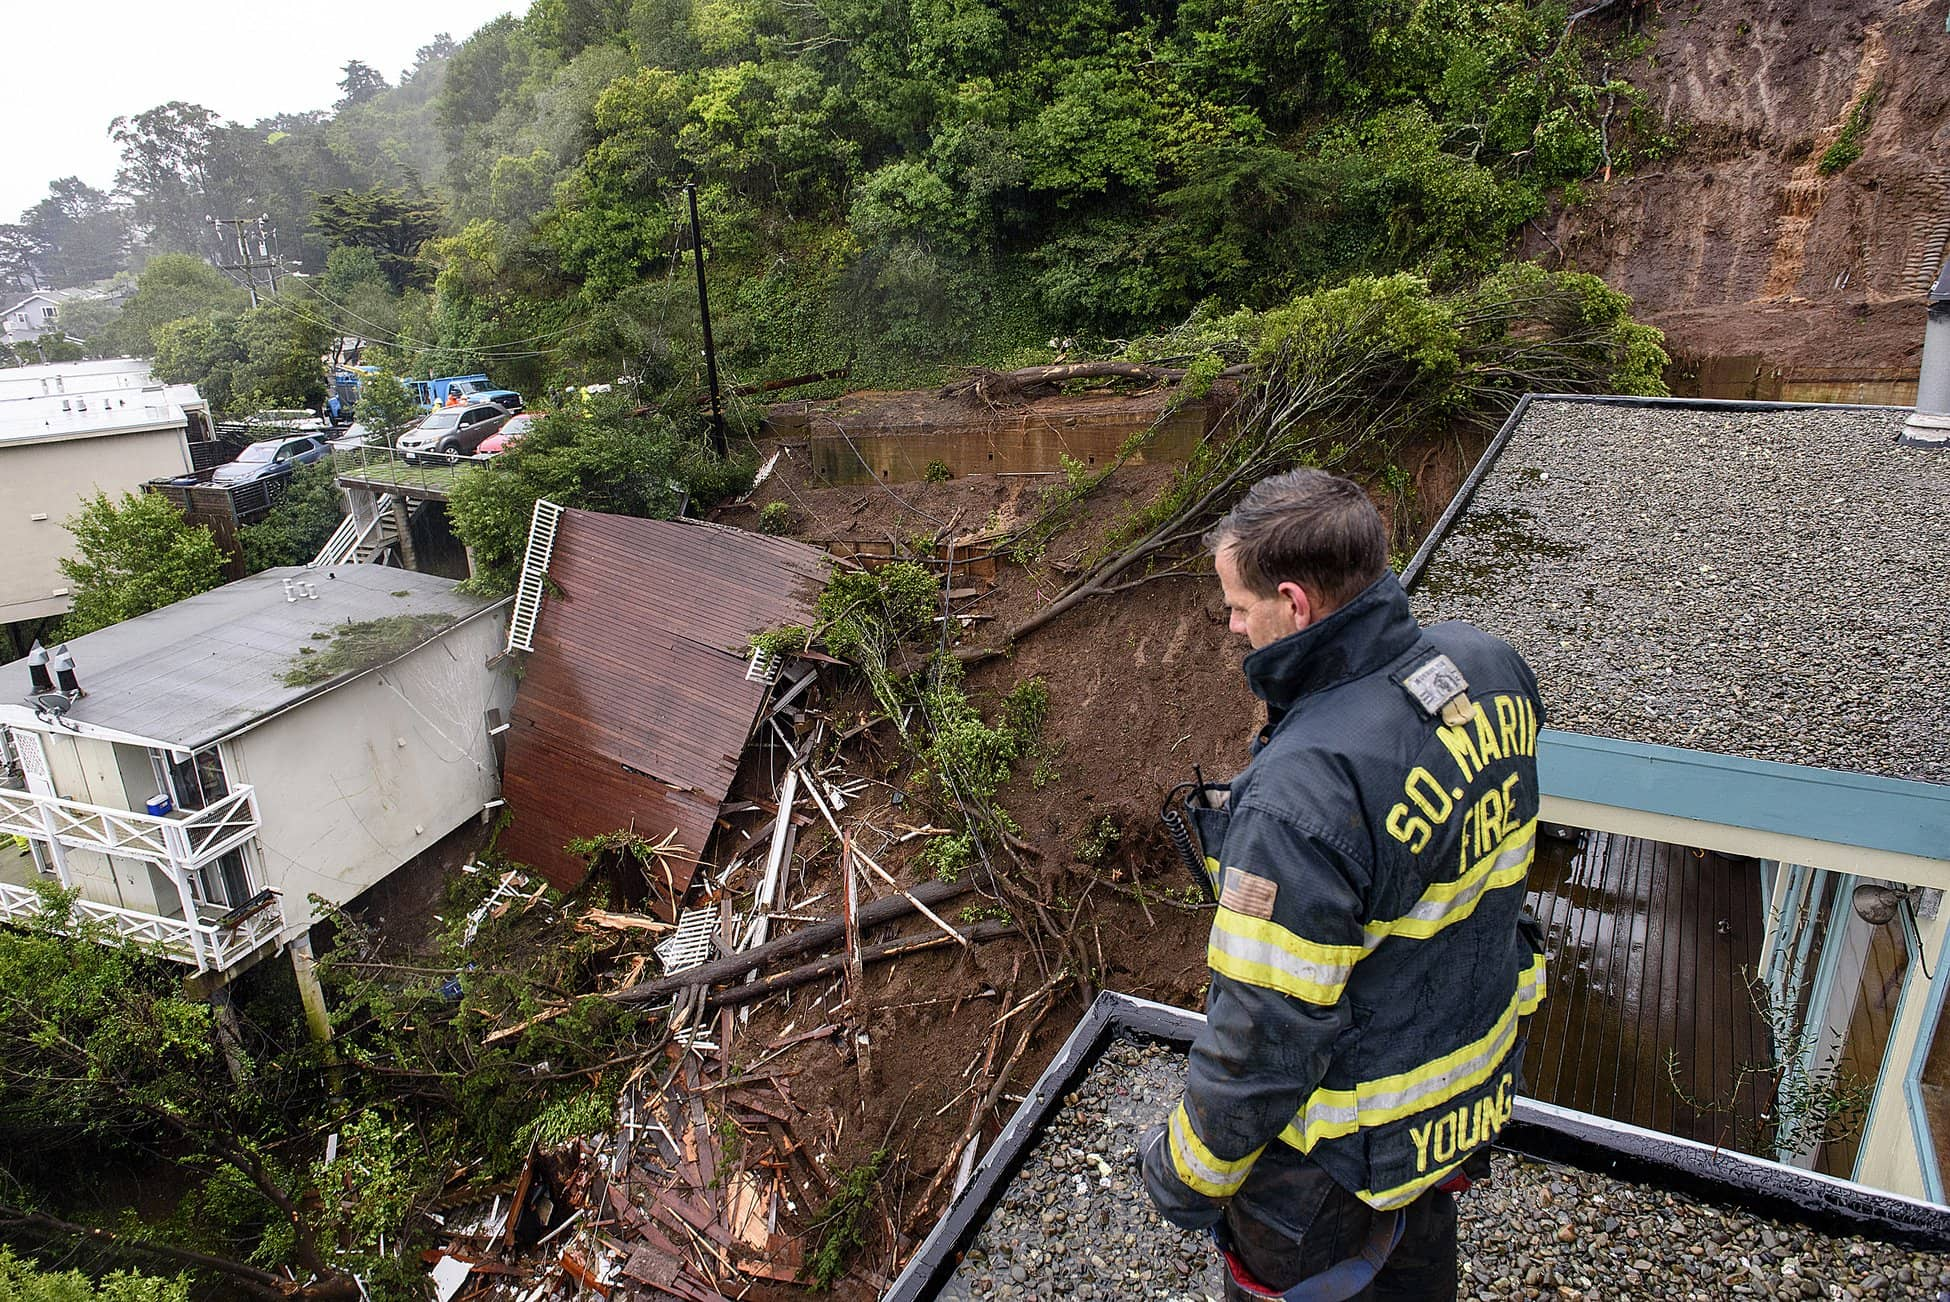 Photo of firefighter looking at wreckage caused by mudslide in California